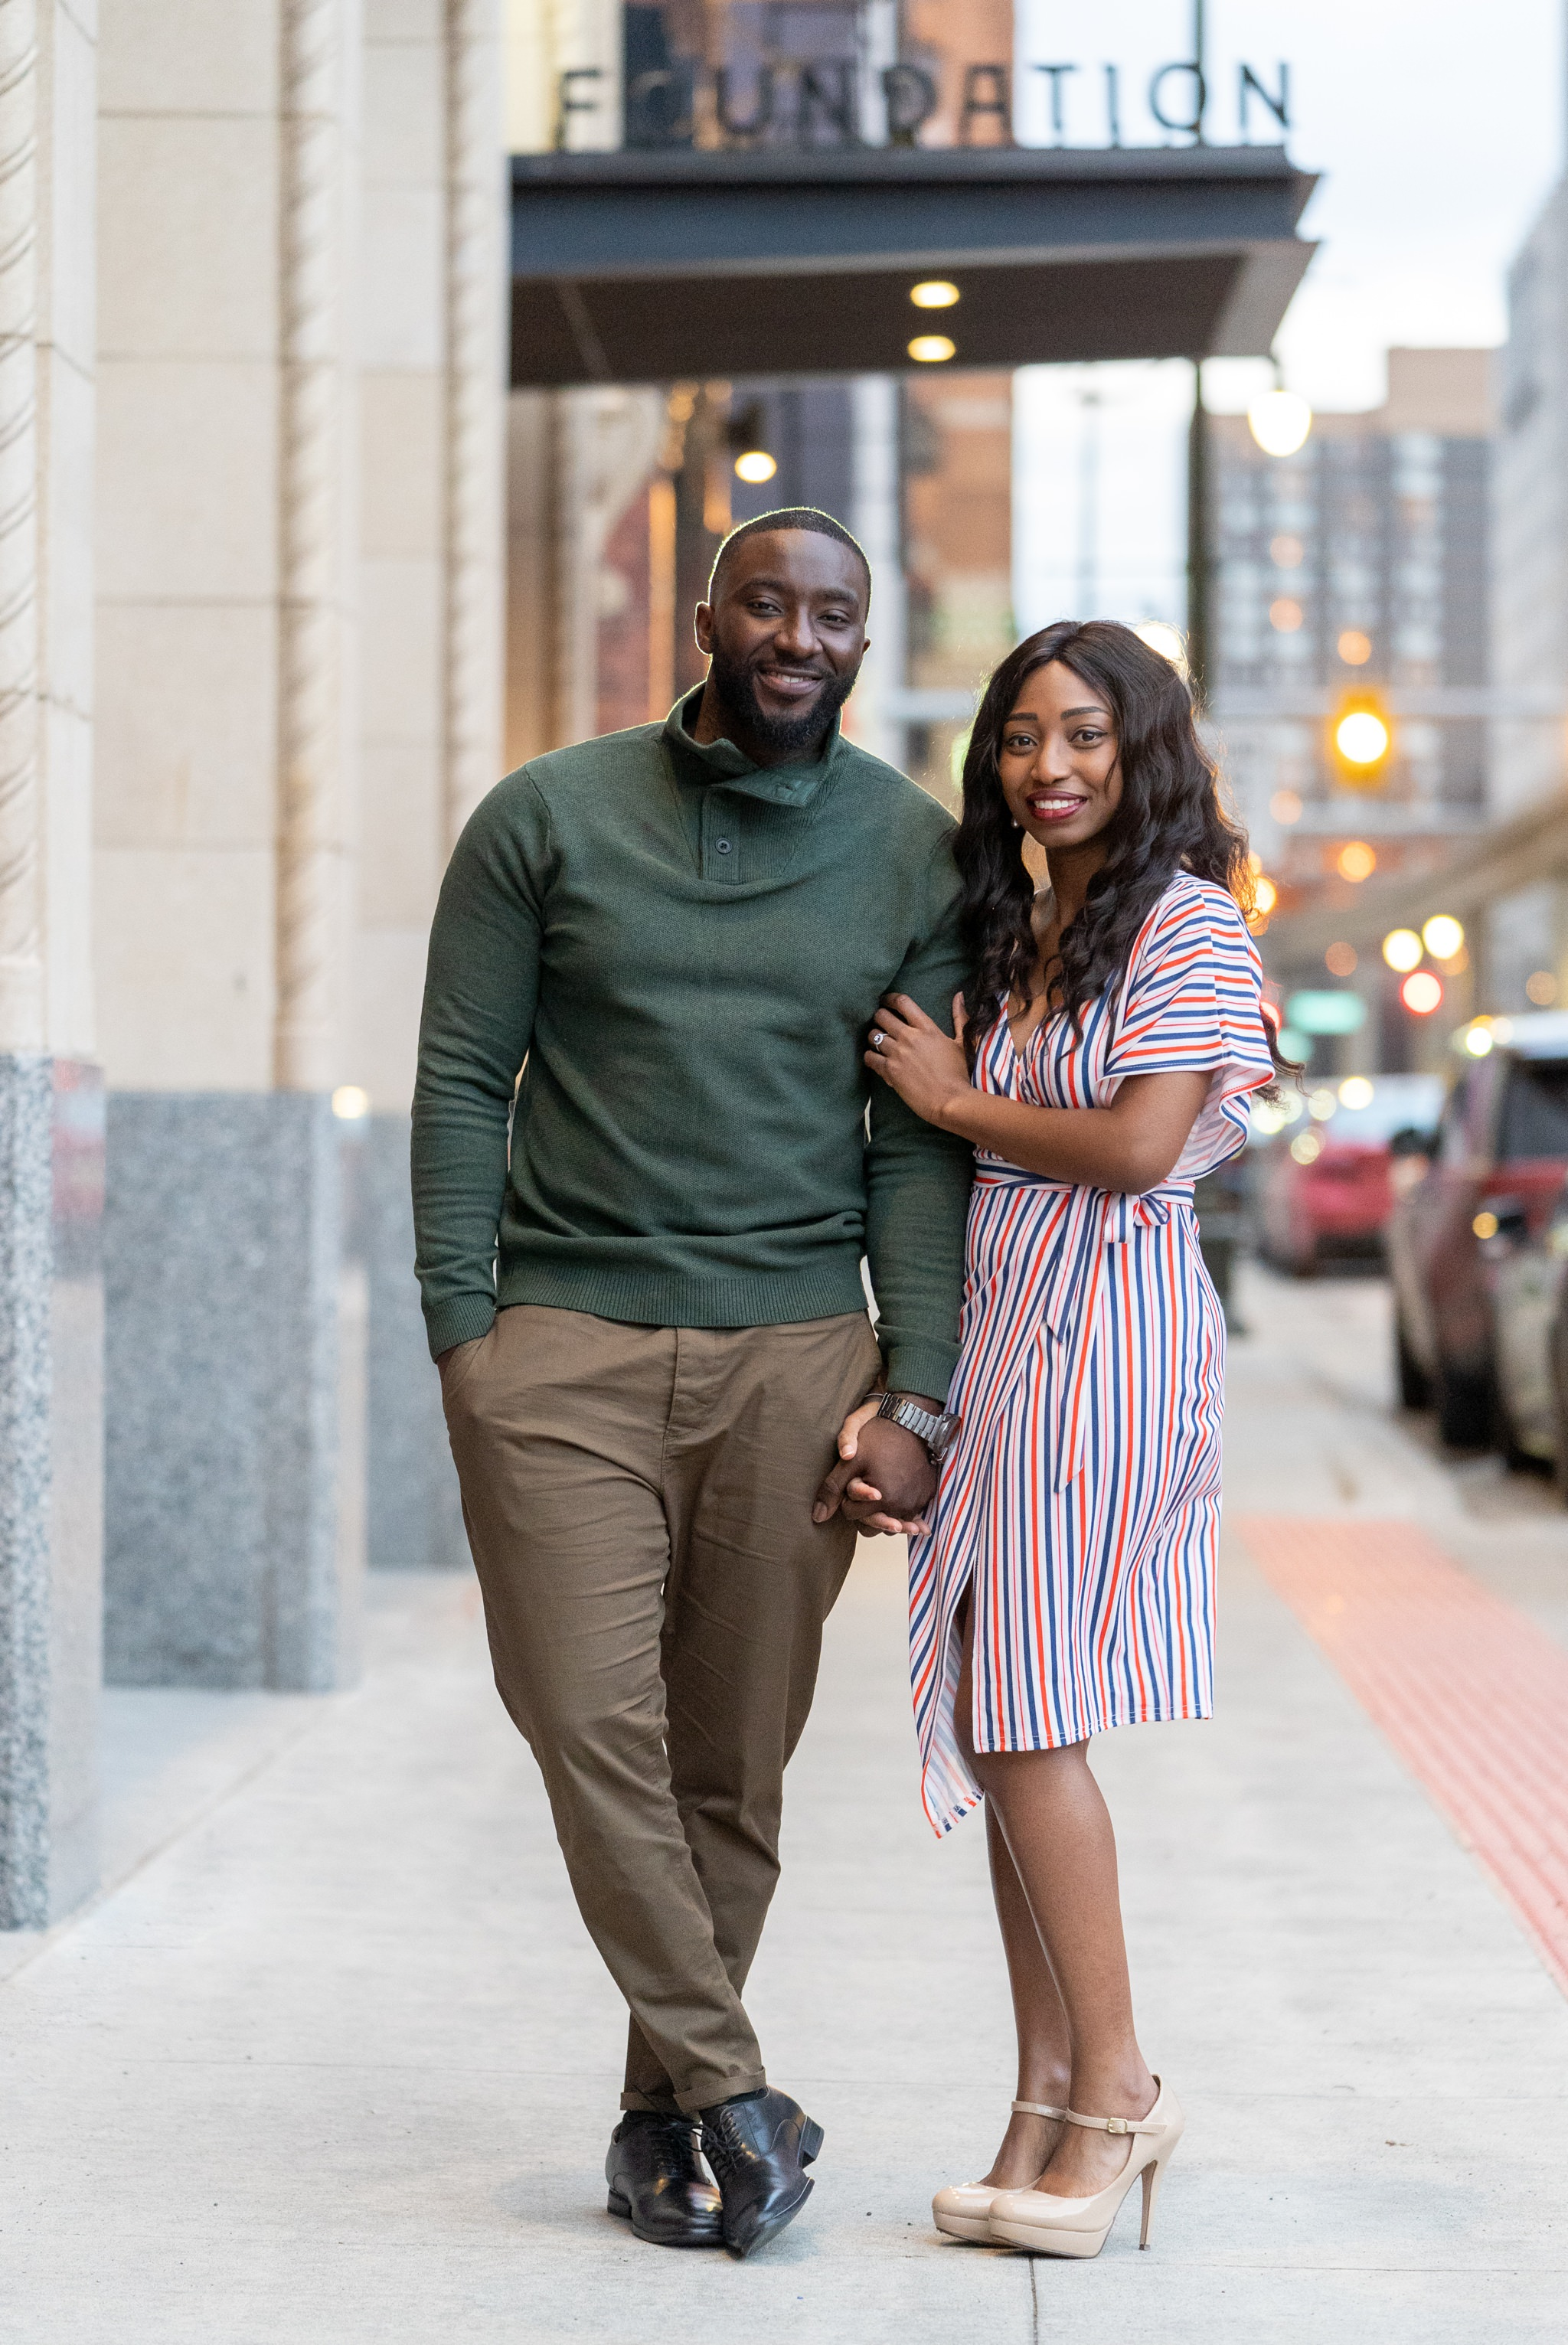 Foundation Hotel Detroit engagement